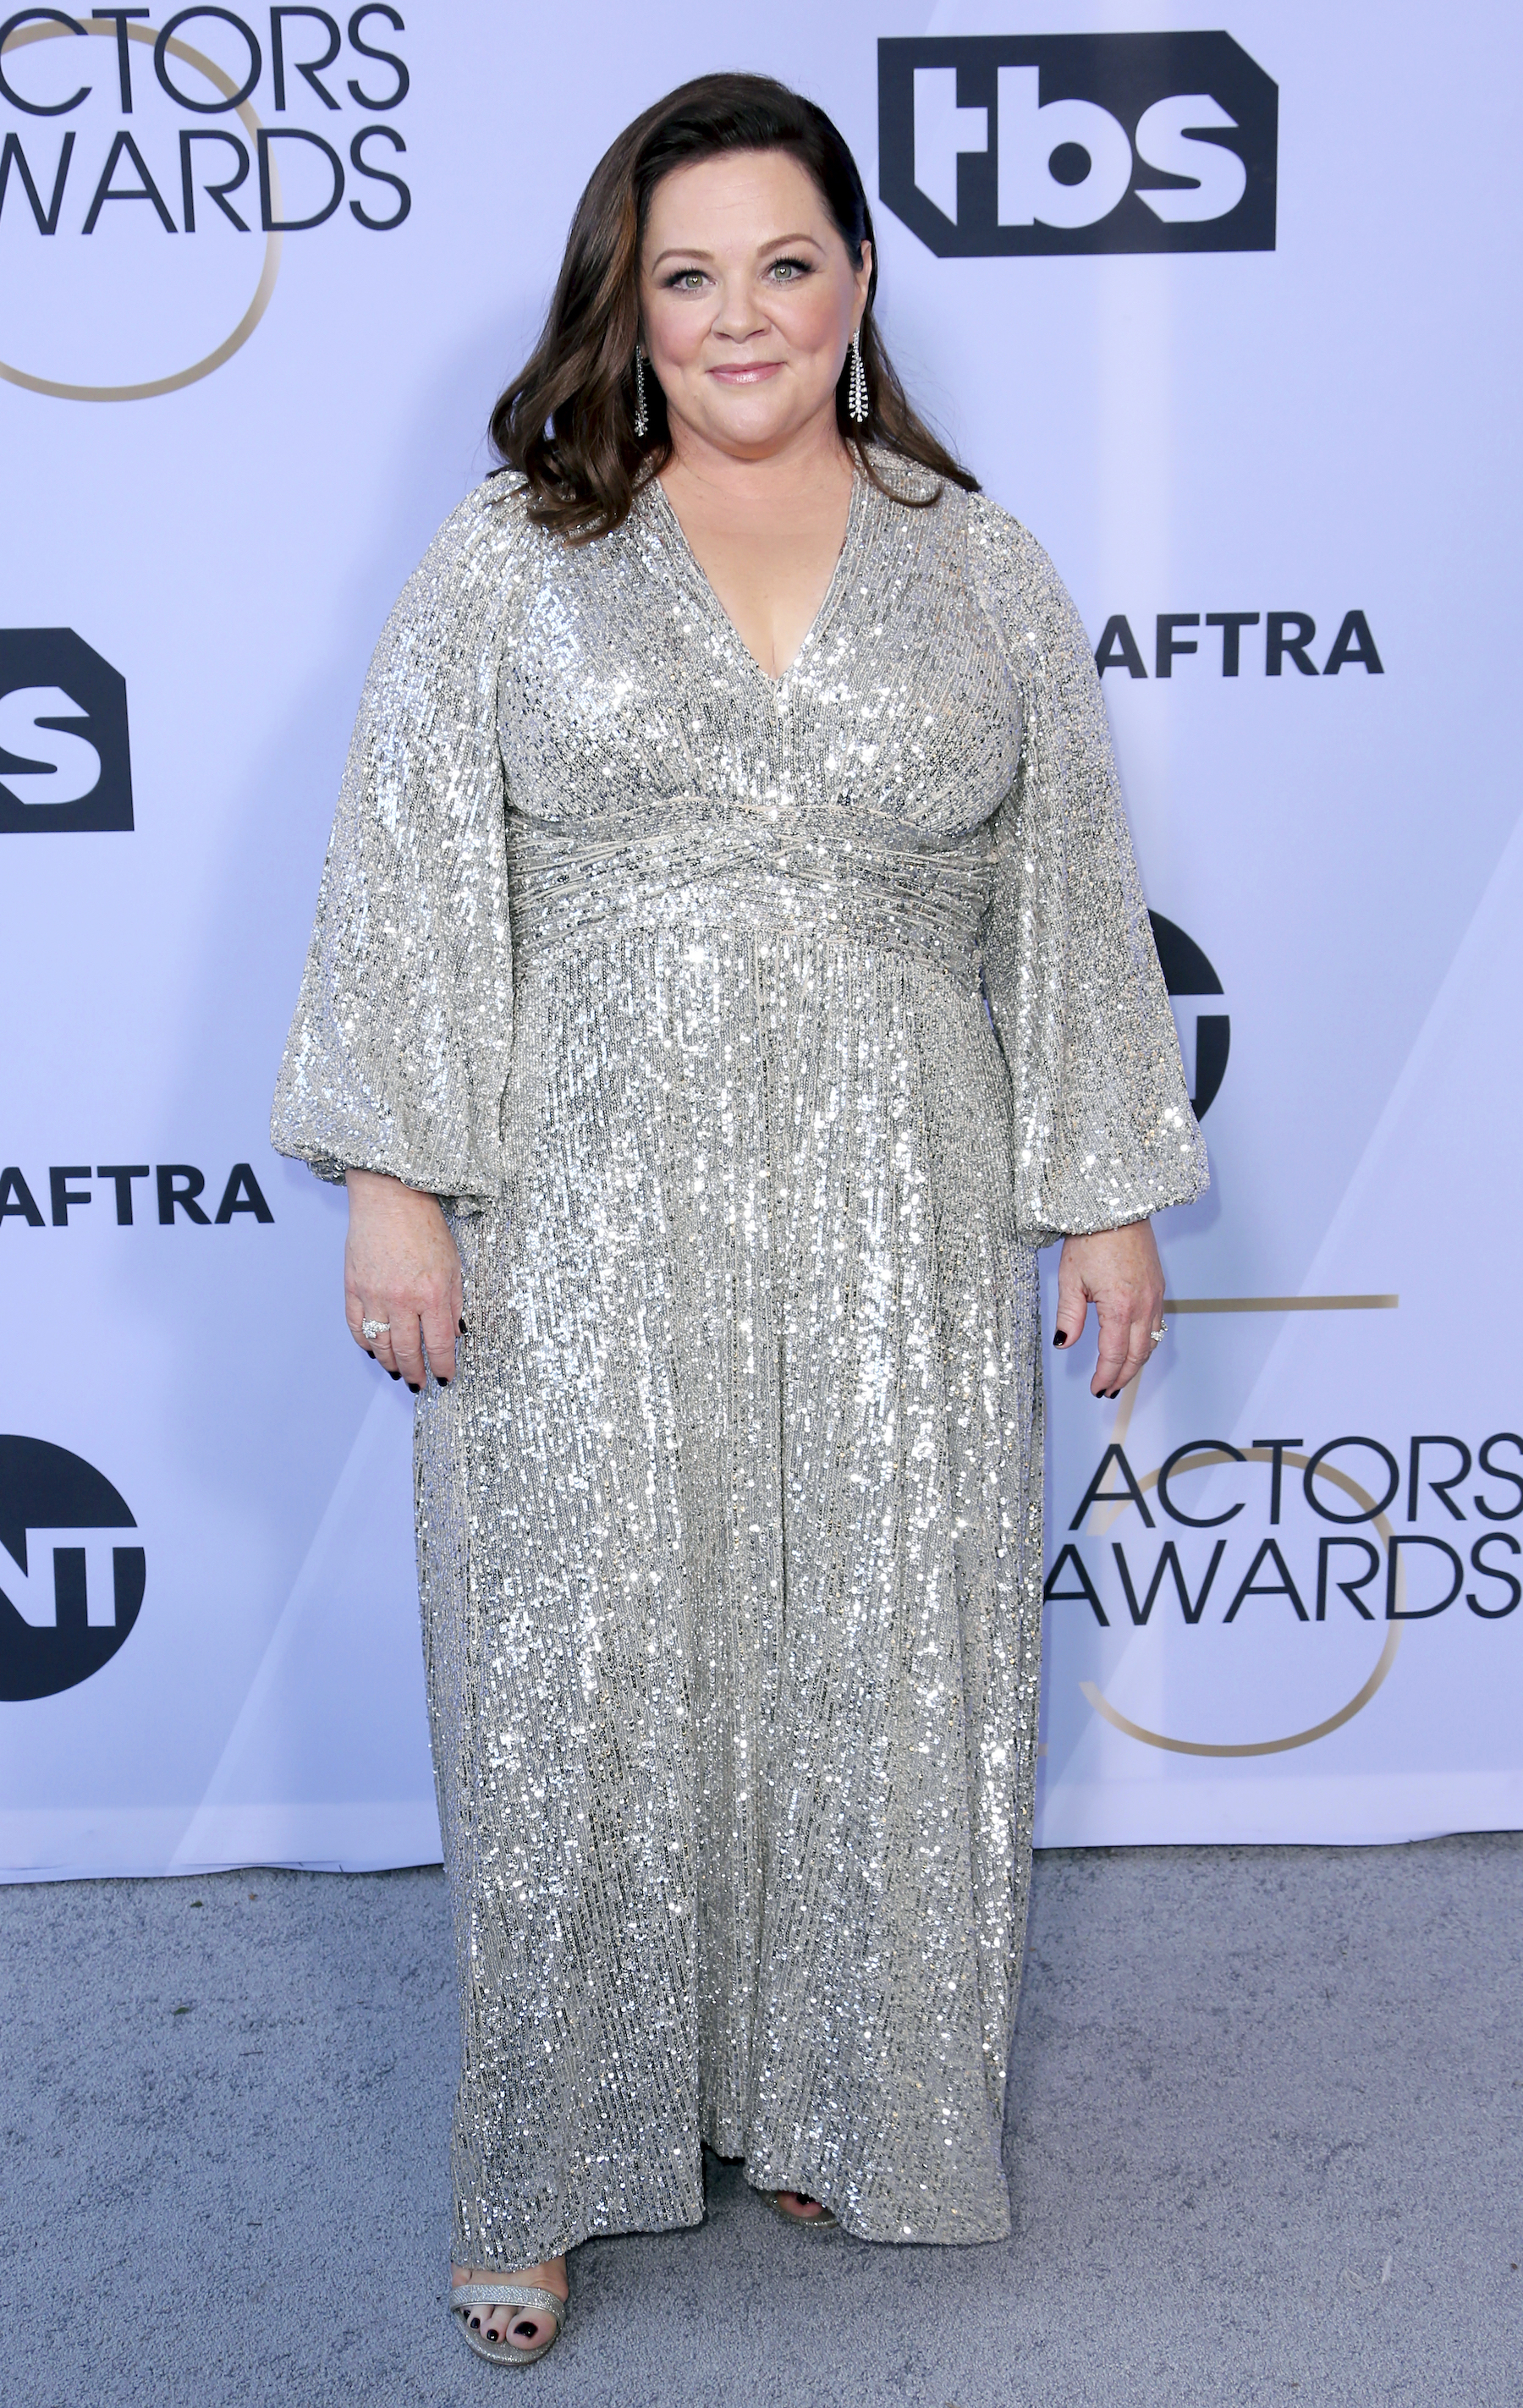 <div class='meta'><div class='origin-logo' data-origin='AP'></div><span class='caption-text' data-credit='Willy Sanjuan/Invision/AP'>Melissa McCarthy arrives at the 25th annual Screen Actors Guild Awards at the Shrine Auditorium & Expo Hall on Sunday, Jan. 27, 2019, in Los Angeles.</span></div>